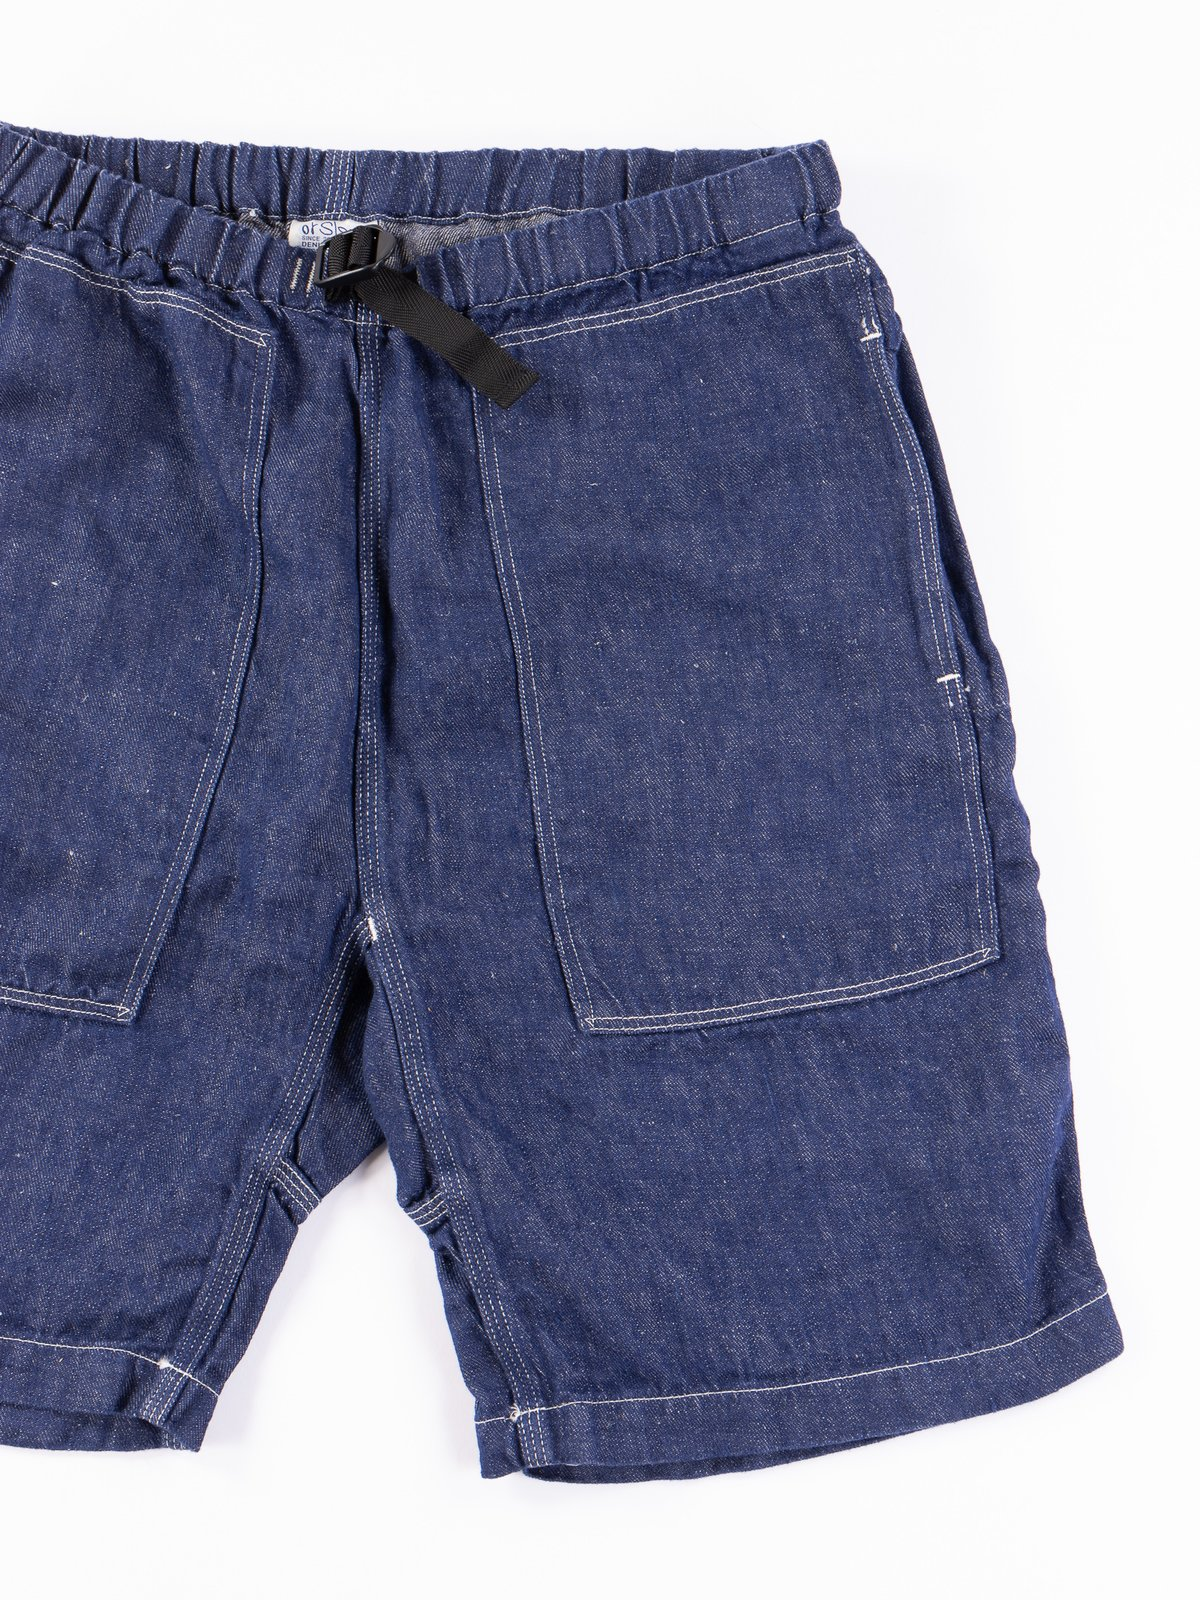 One Wash Linen Denim Climbing Short - Image 2